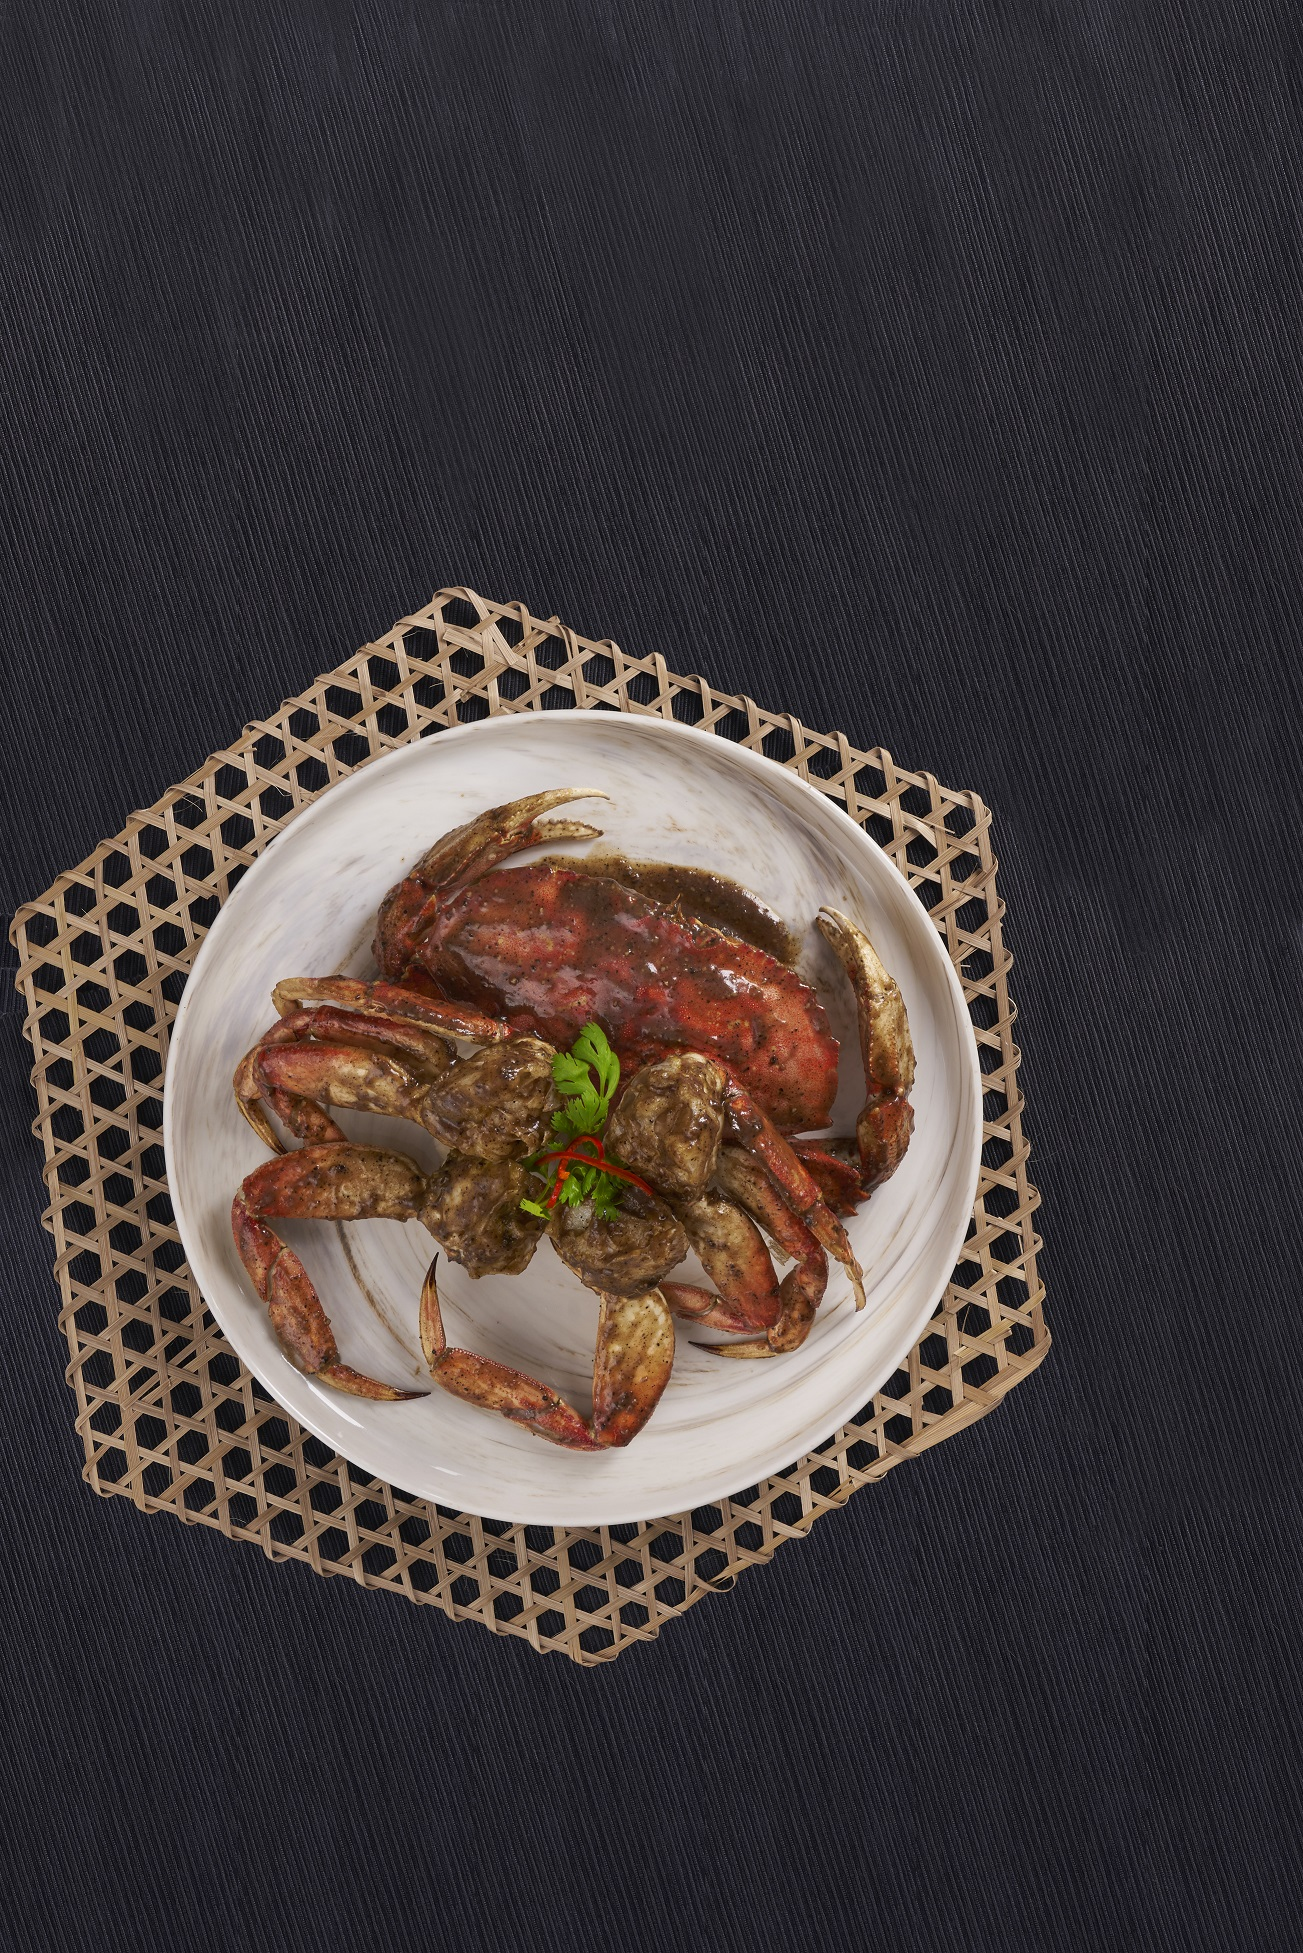 Enjoy 50% OFF on Live Alaskan Crab and More at JUMBO Seafood   Why Not Deals 2 & Promotions